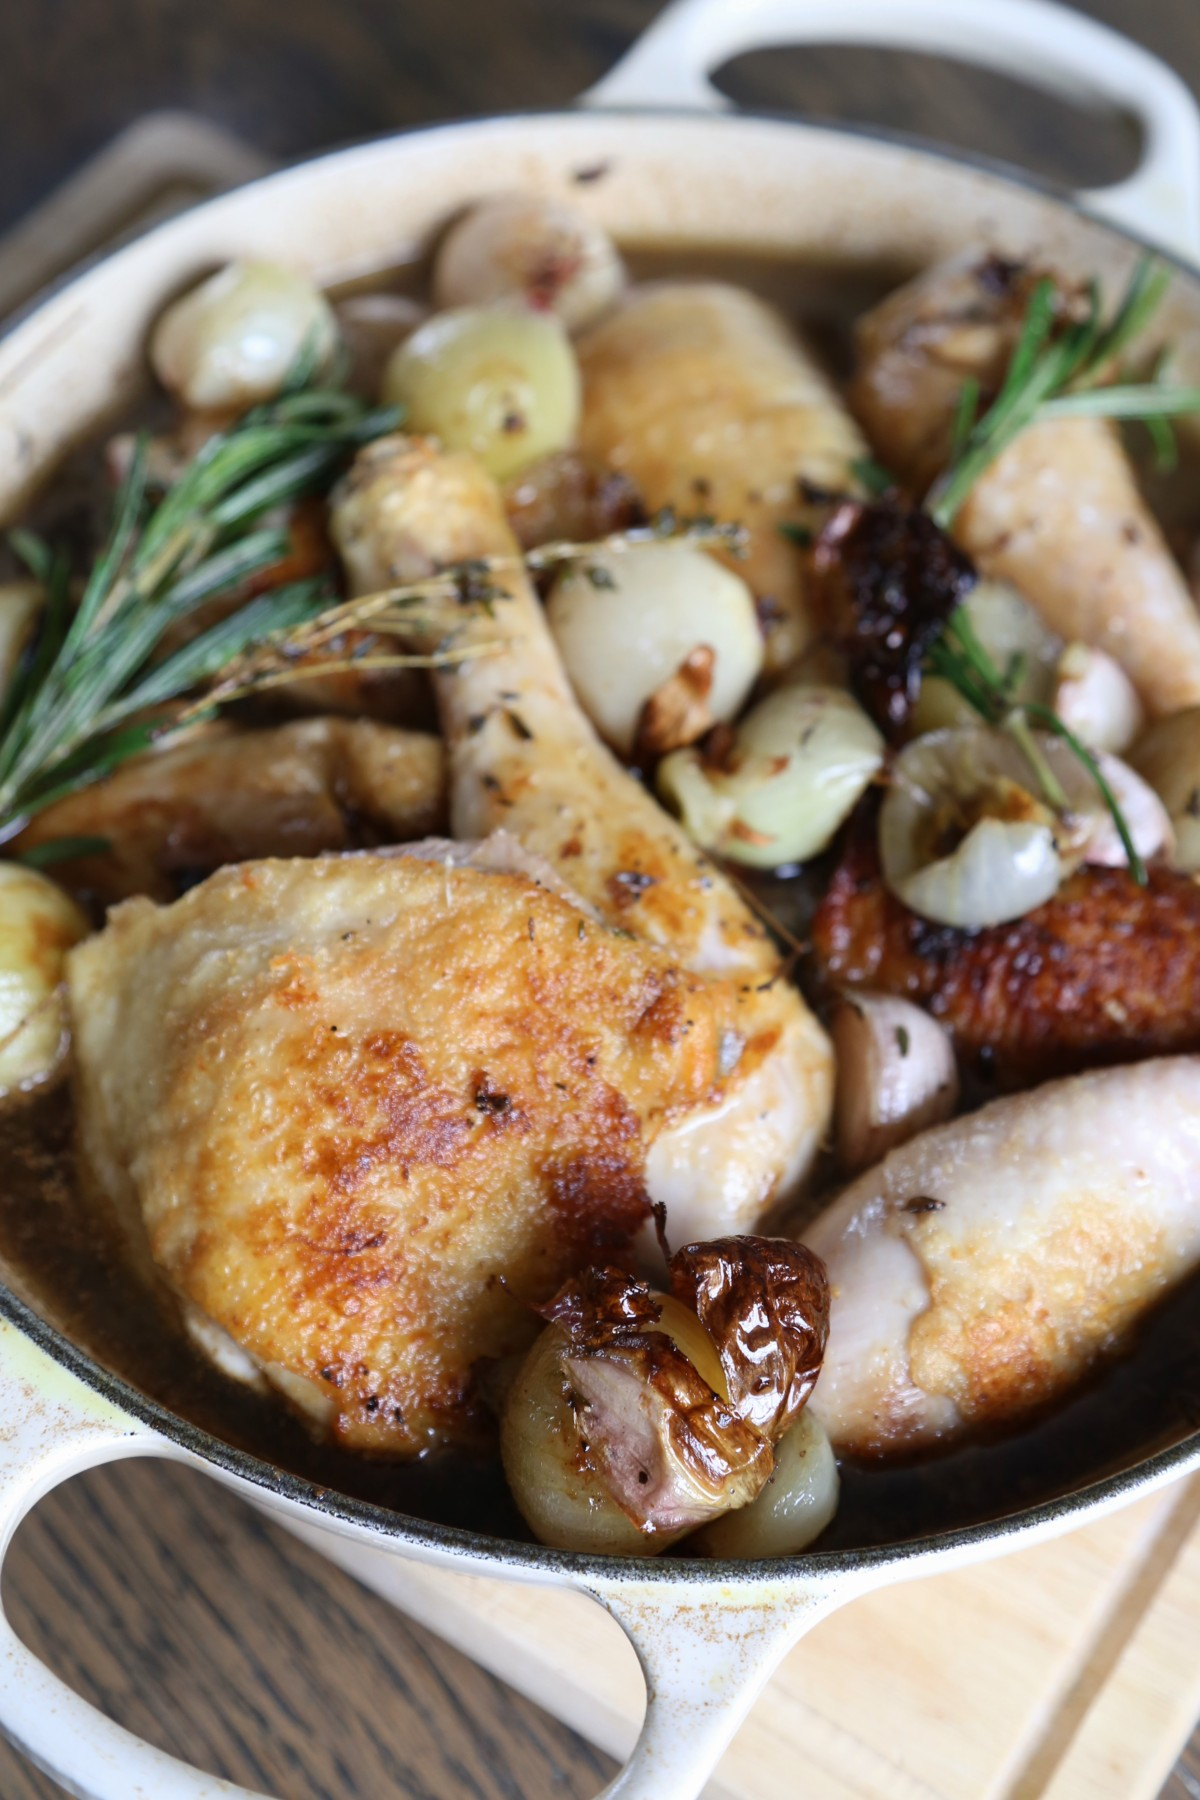 Chicken cooked in sherry and sherry vinegar